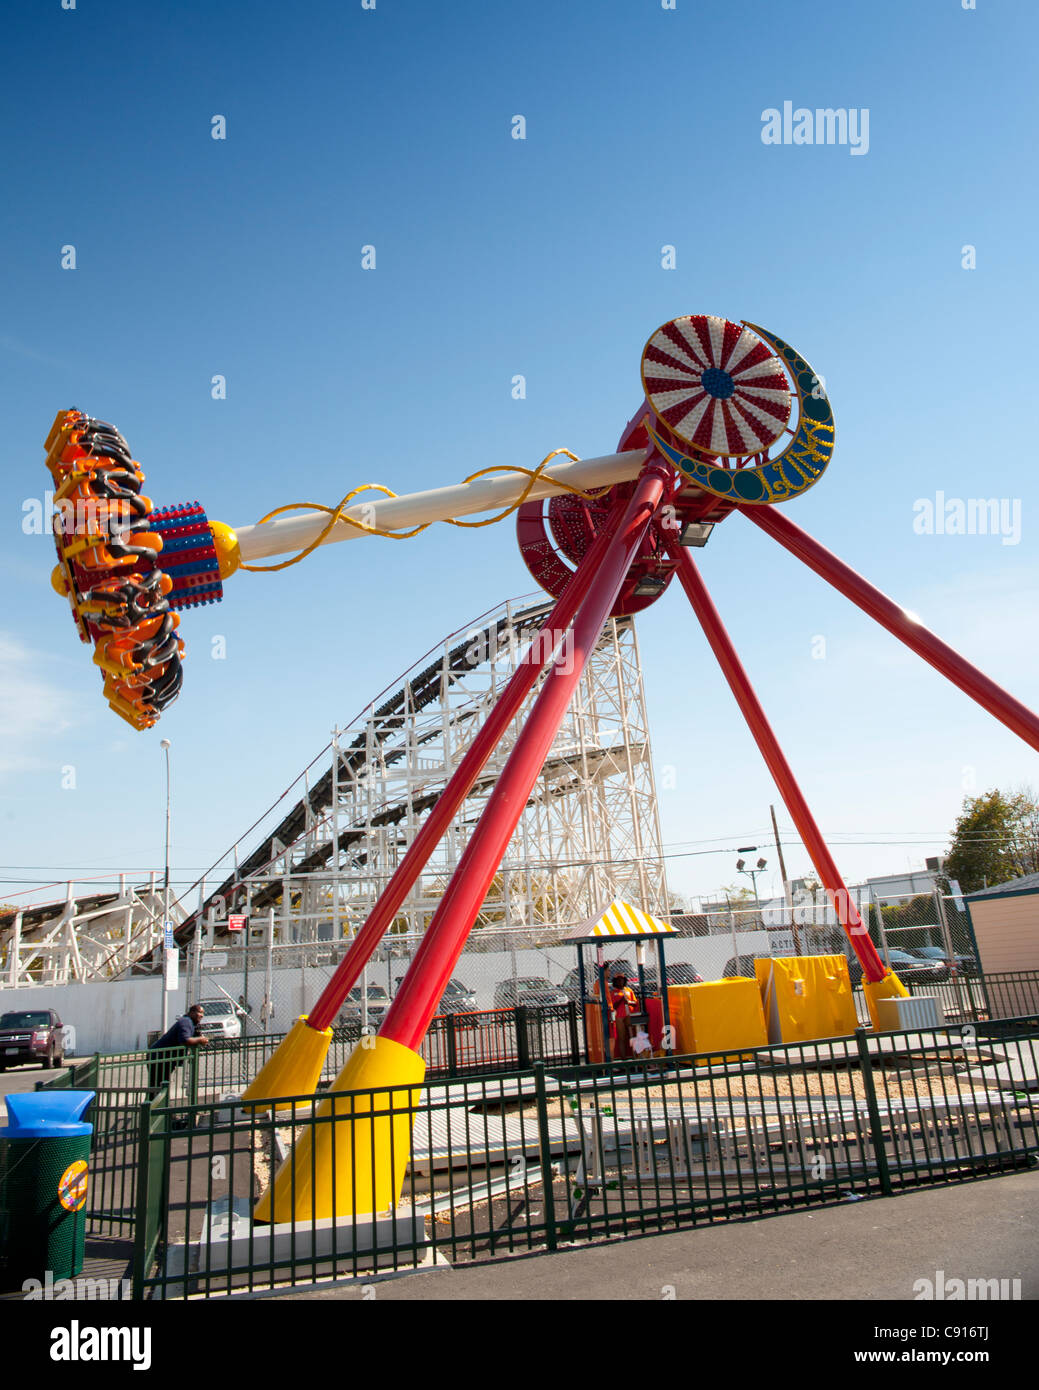 Coney Island is famous for its amusements boardwalk seaside cafes and fairground attractions and is popular with - Stock Image